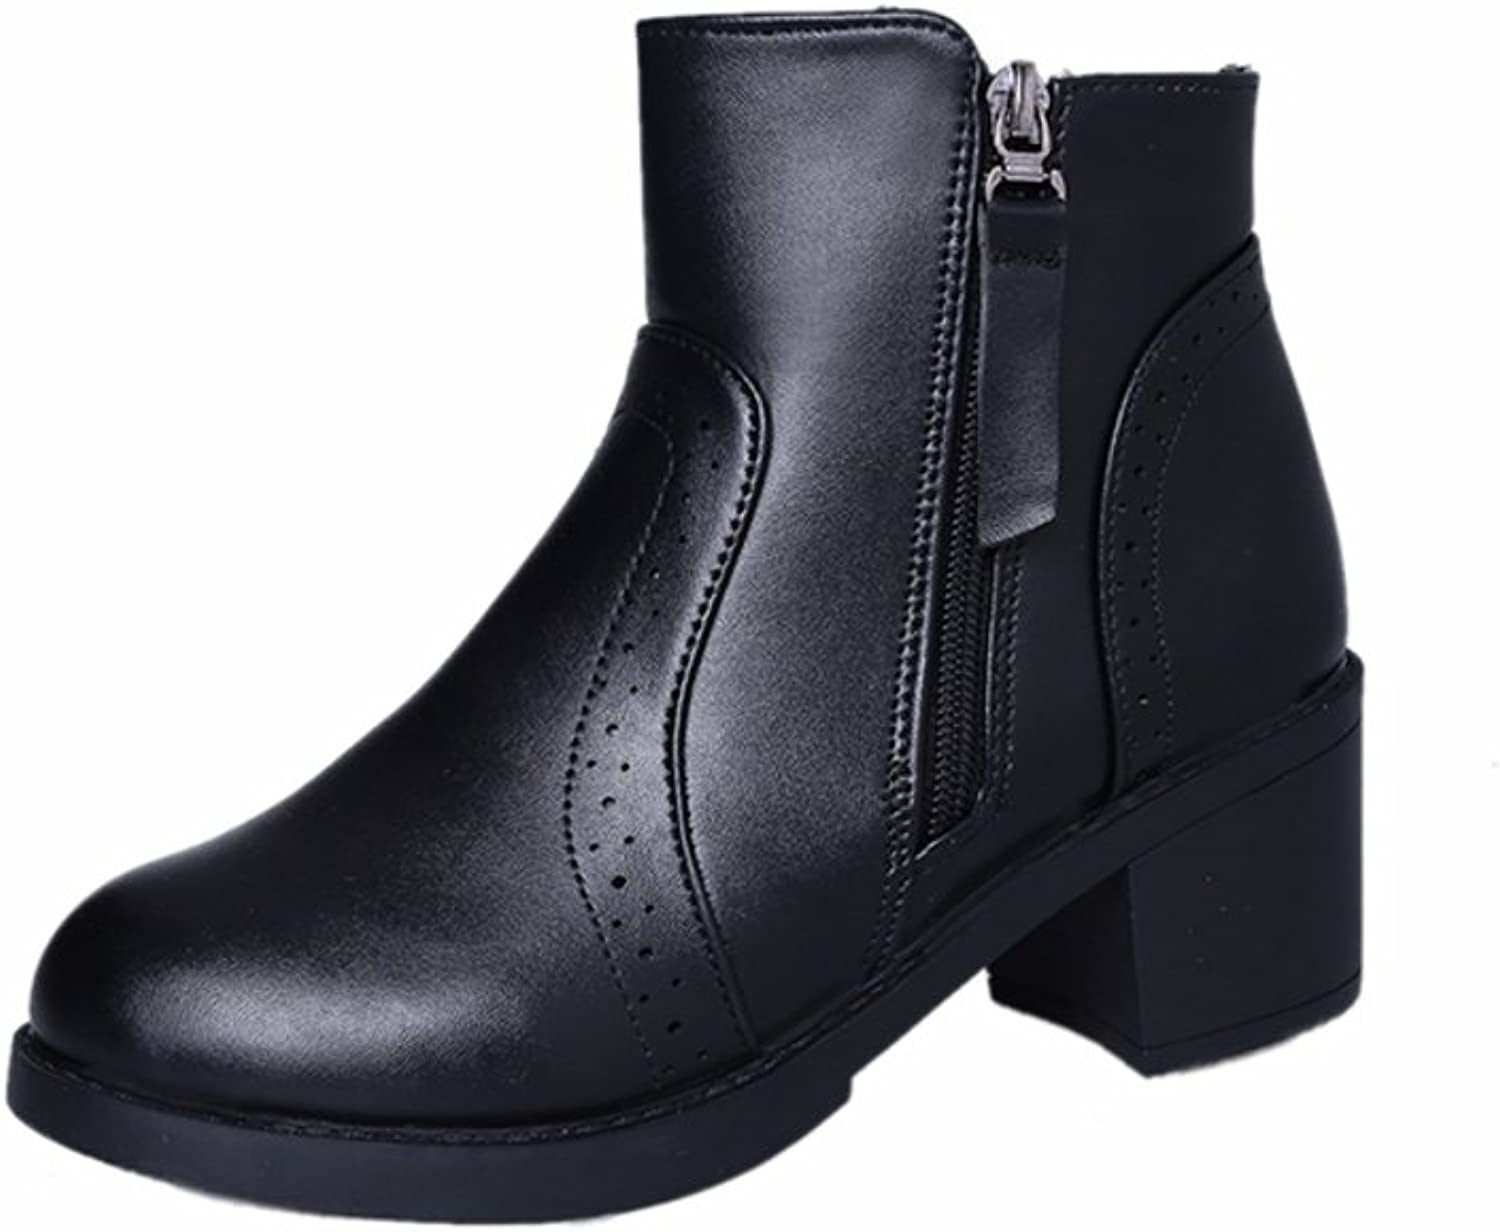 Wind of England in autumn and winter boots Martin boots Brock coarse high boots added velvet and bare boots boots Womens boots